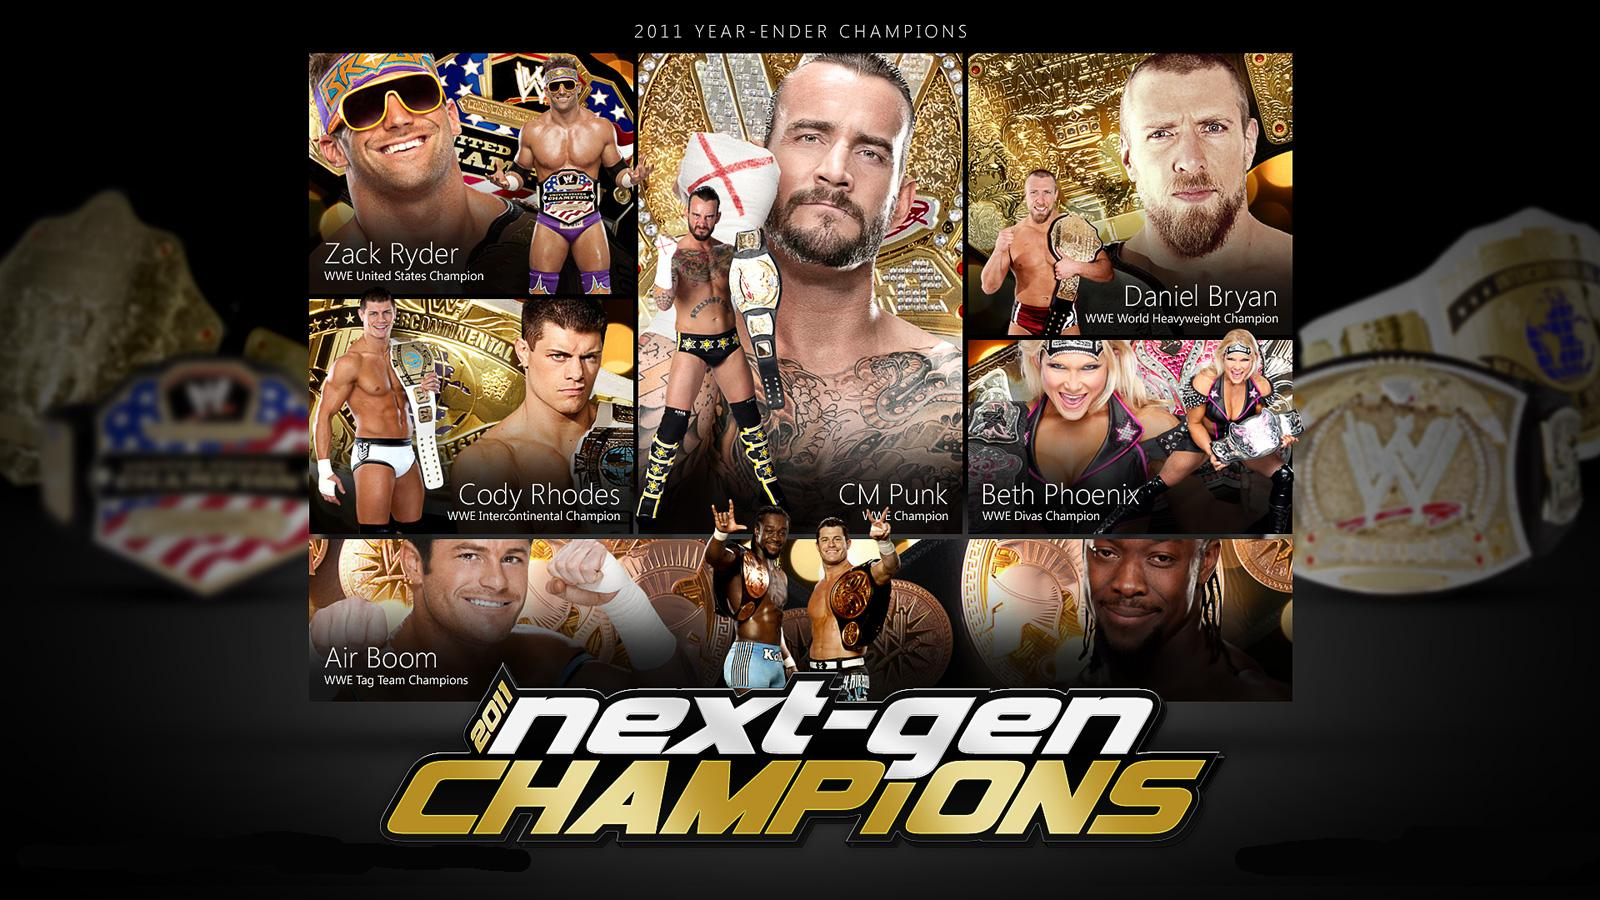 new kdls year ender 2011 wwe next generation champions wallpaper